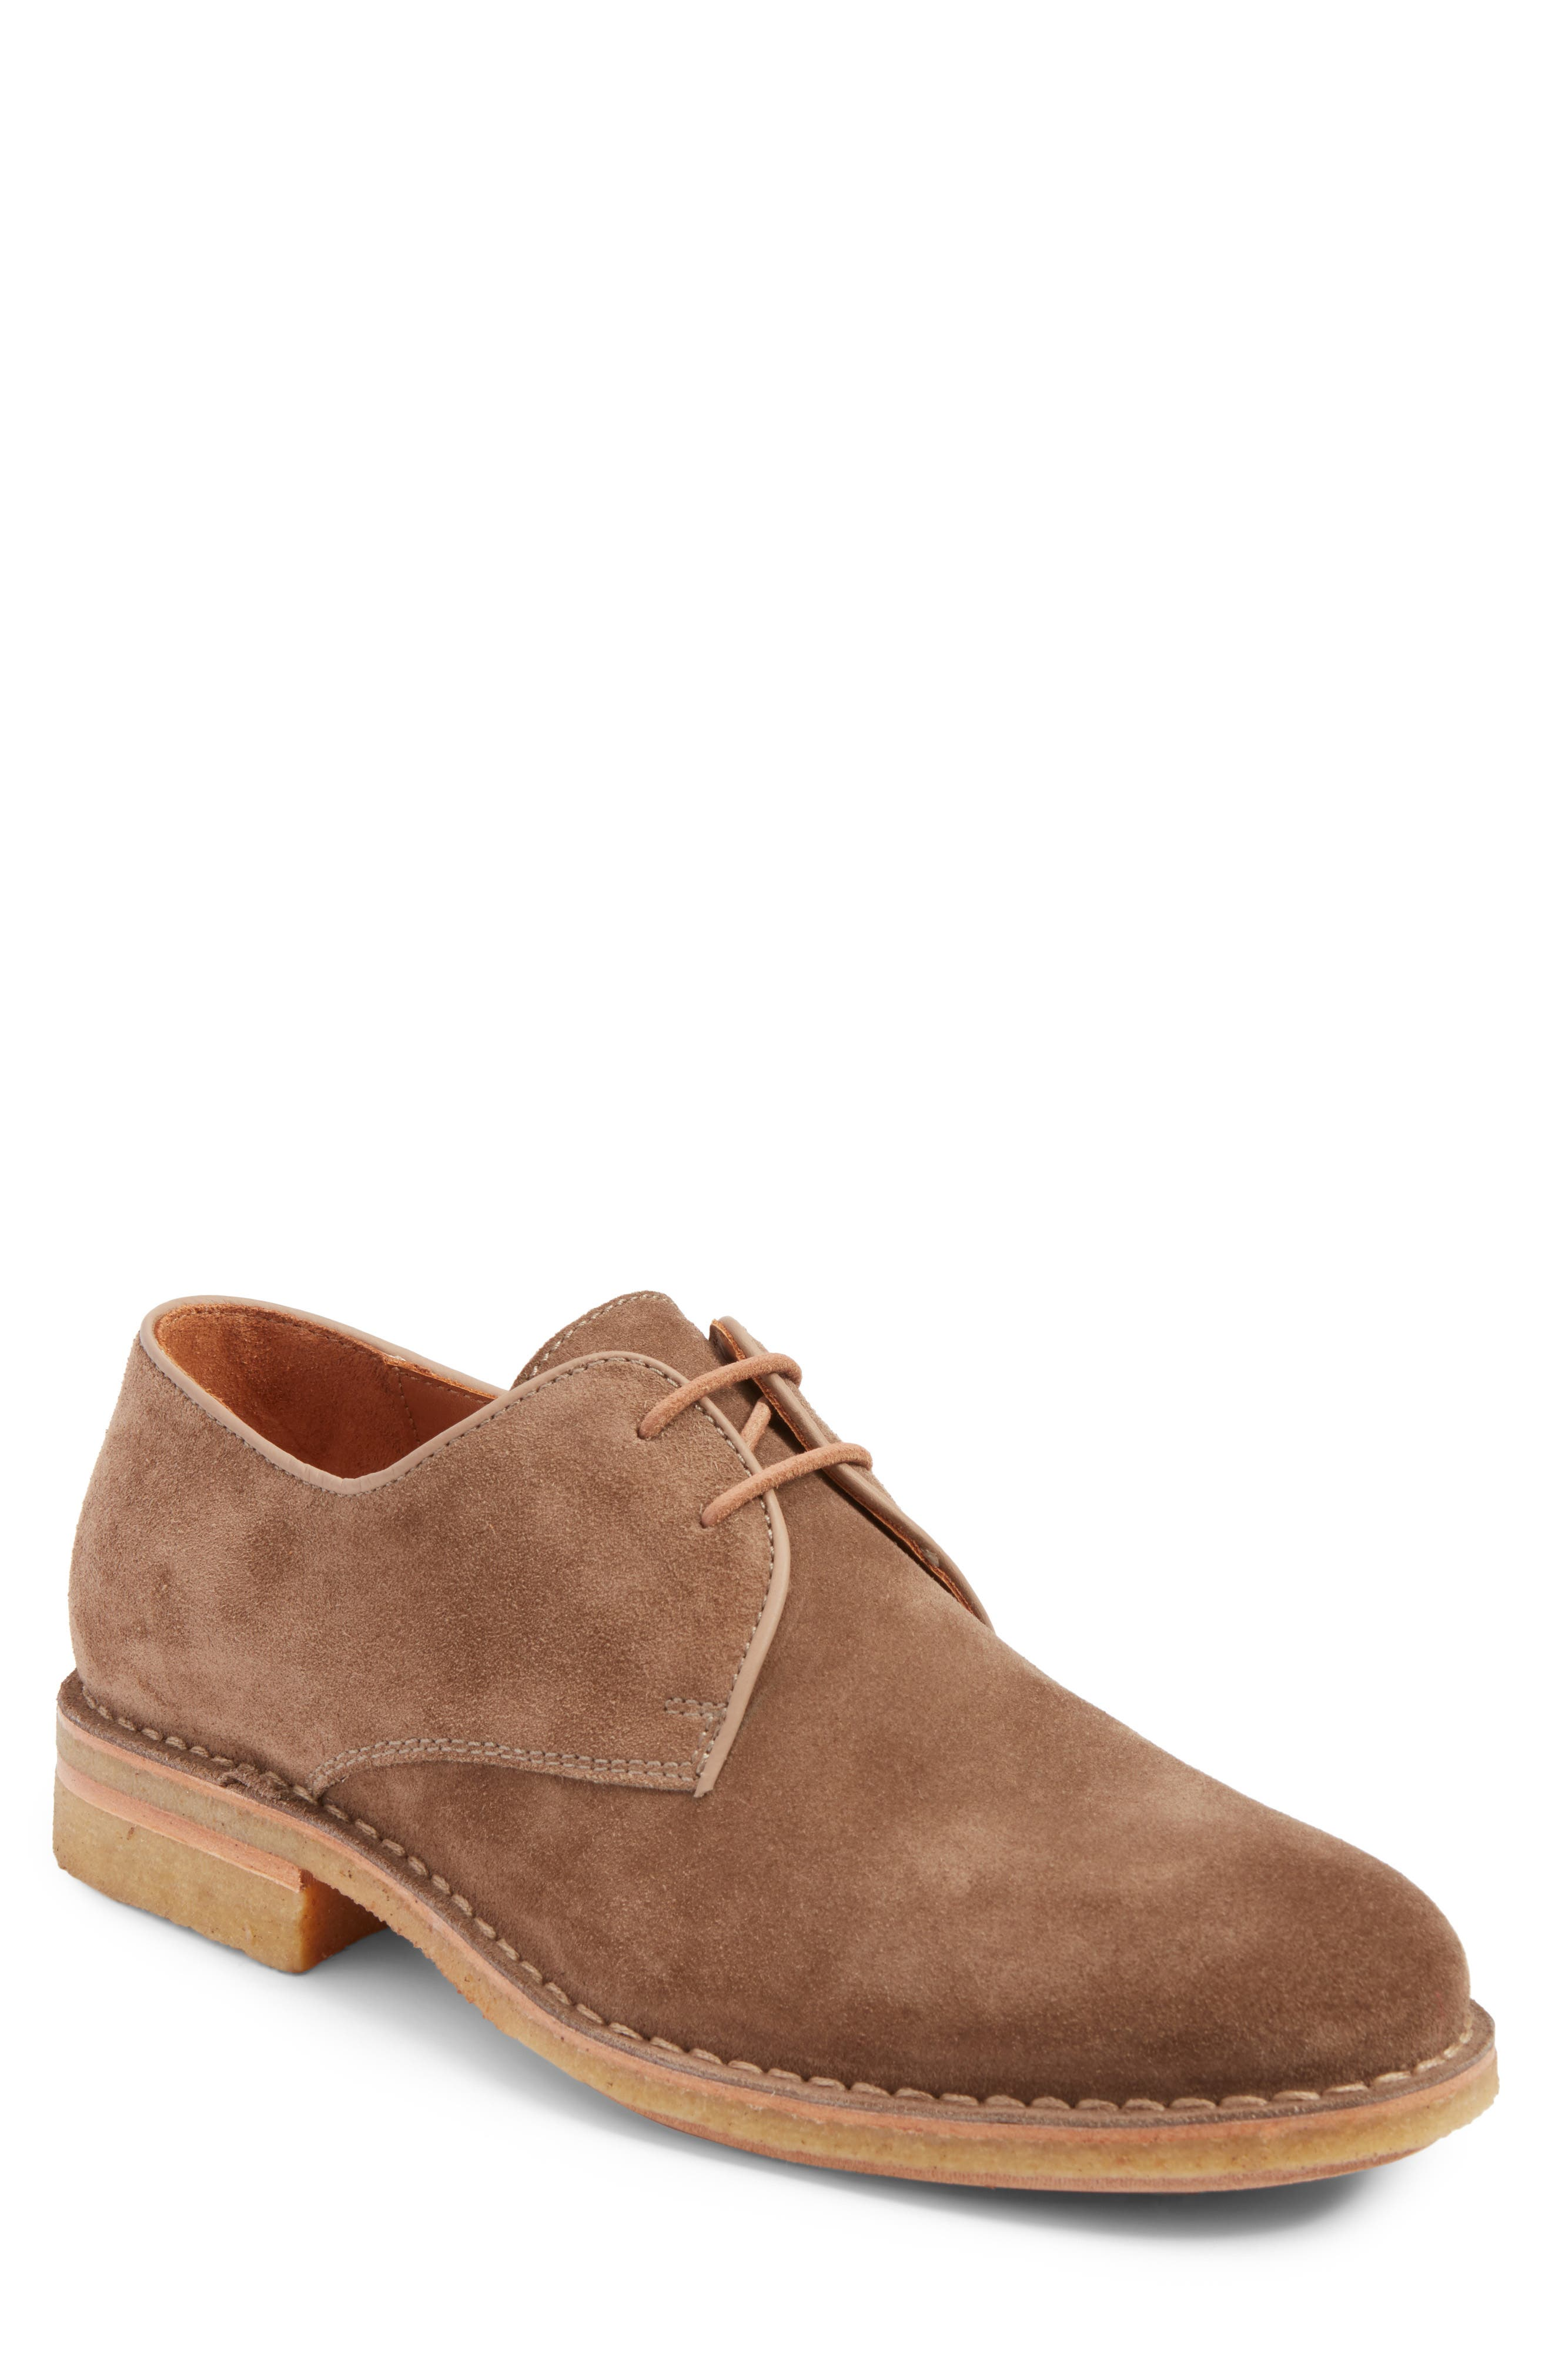 Main Image - Aquatalia Otis Buck Shoe (Men)